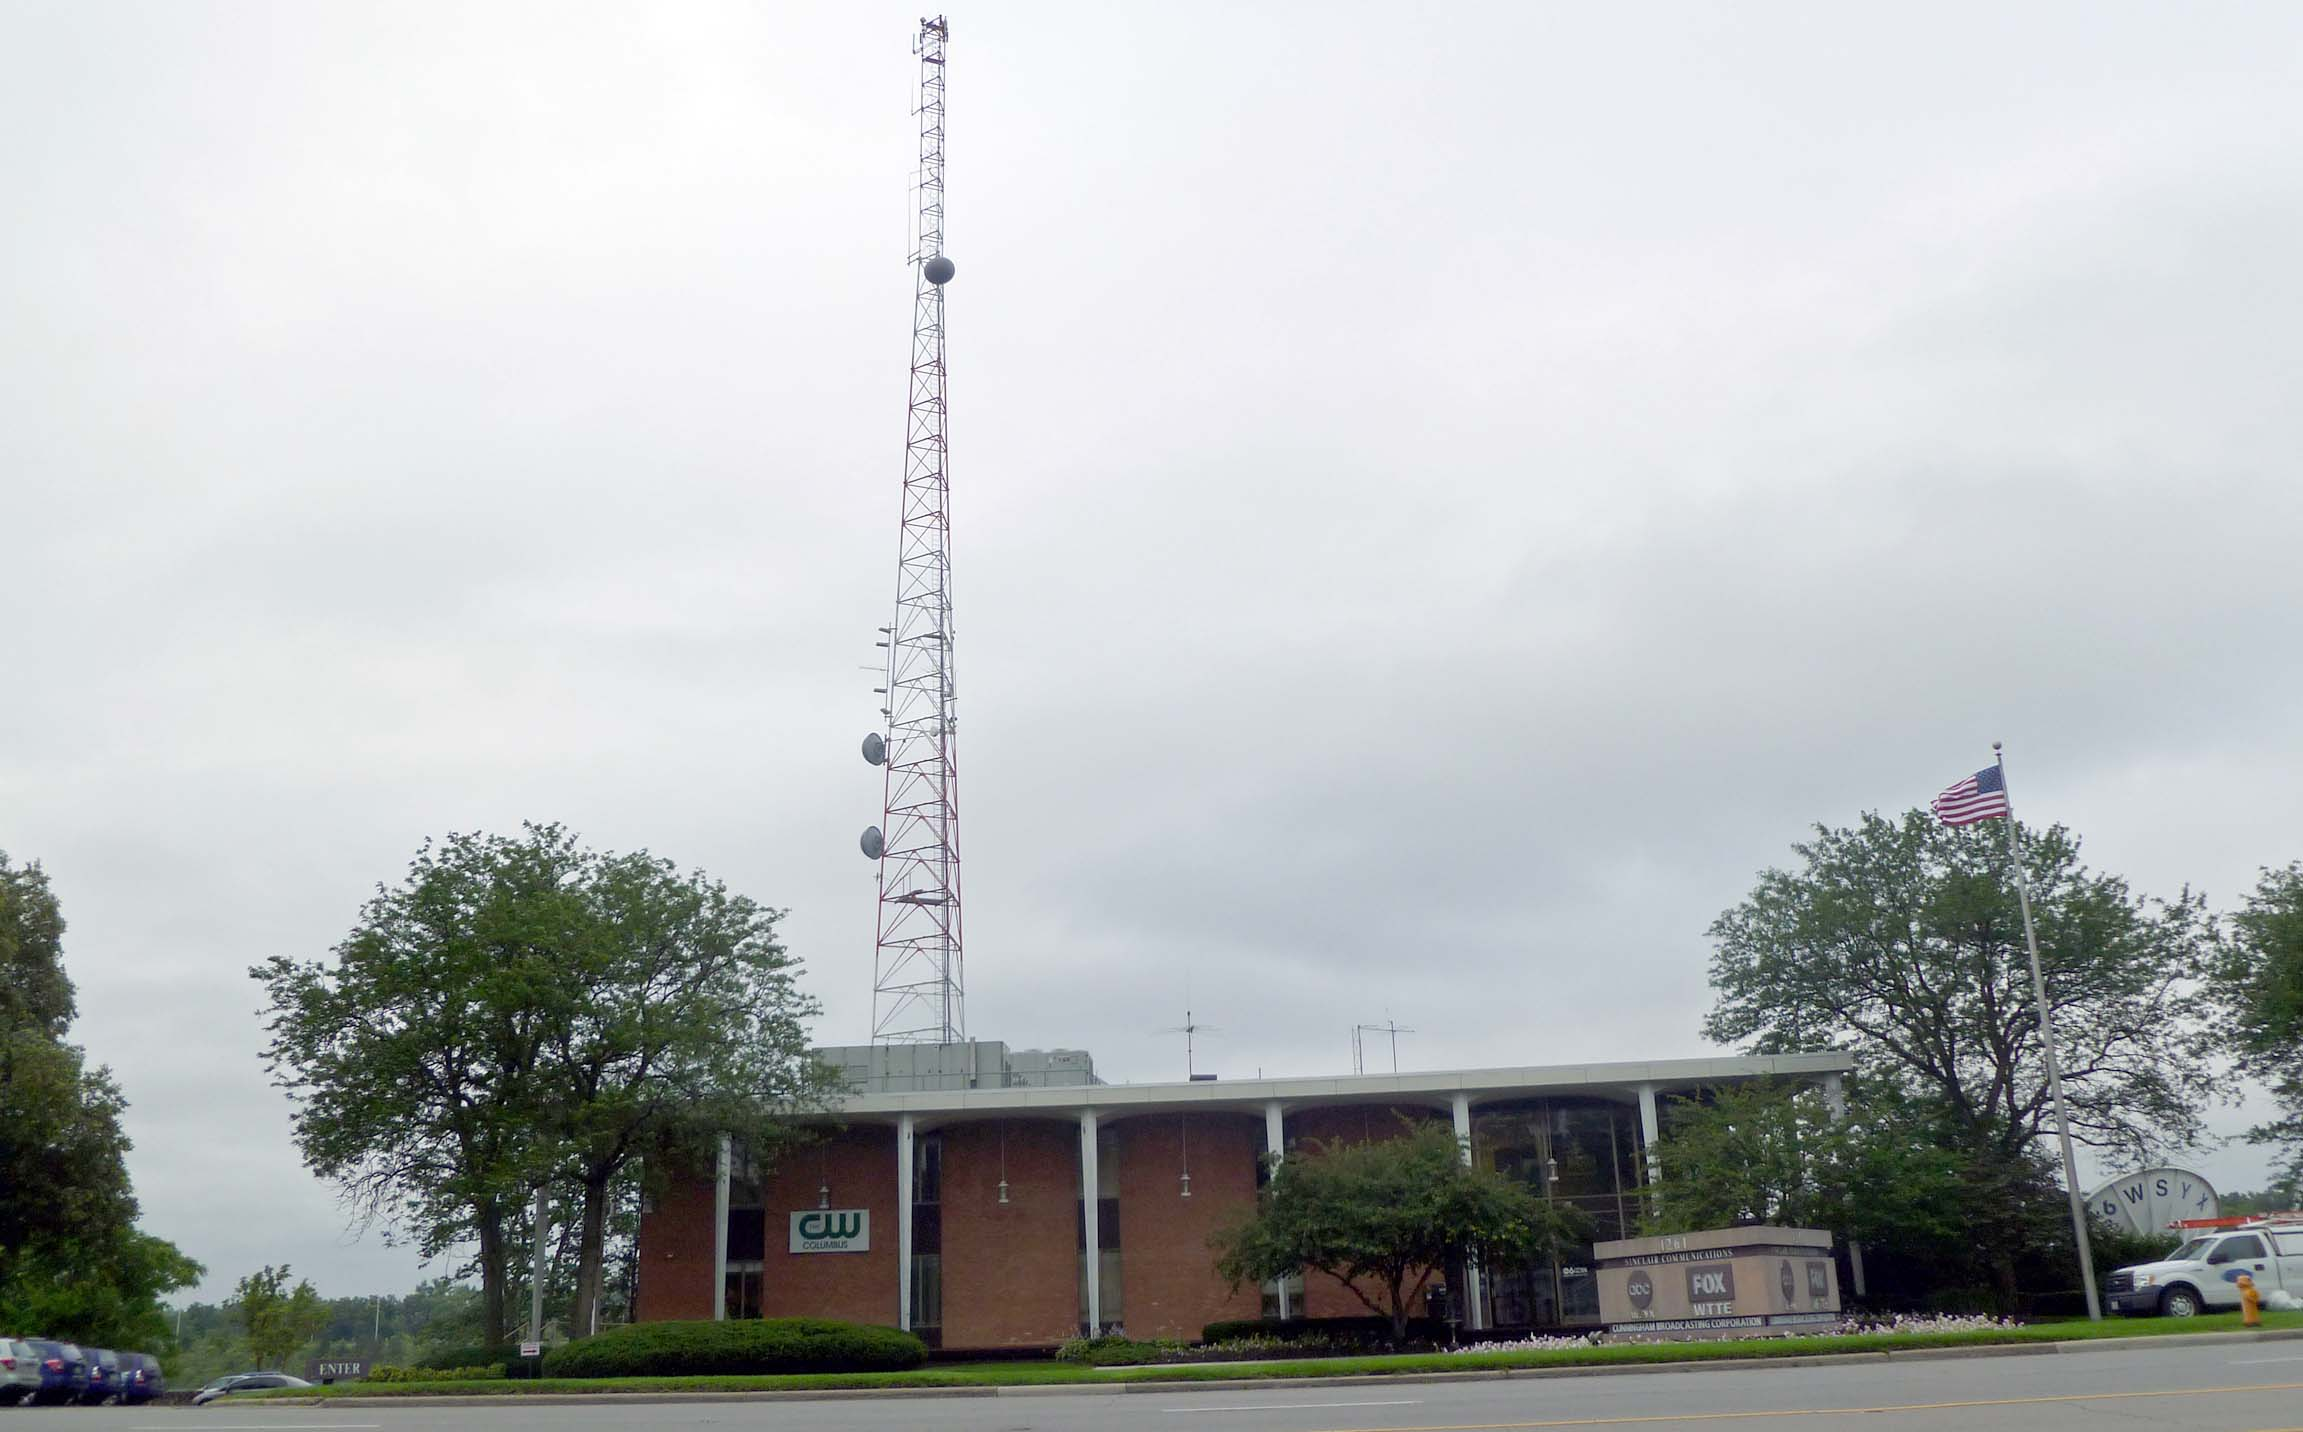 WTTE Fox 28 building and Tower